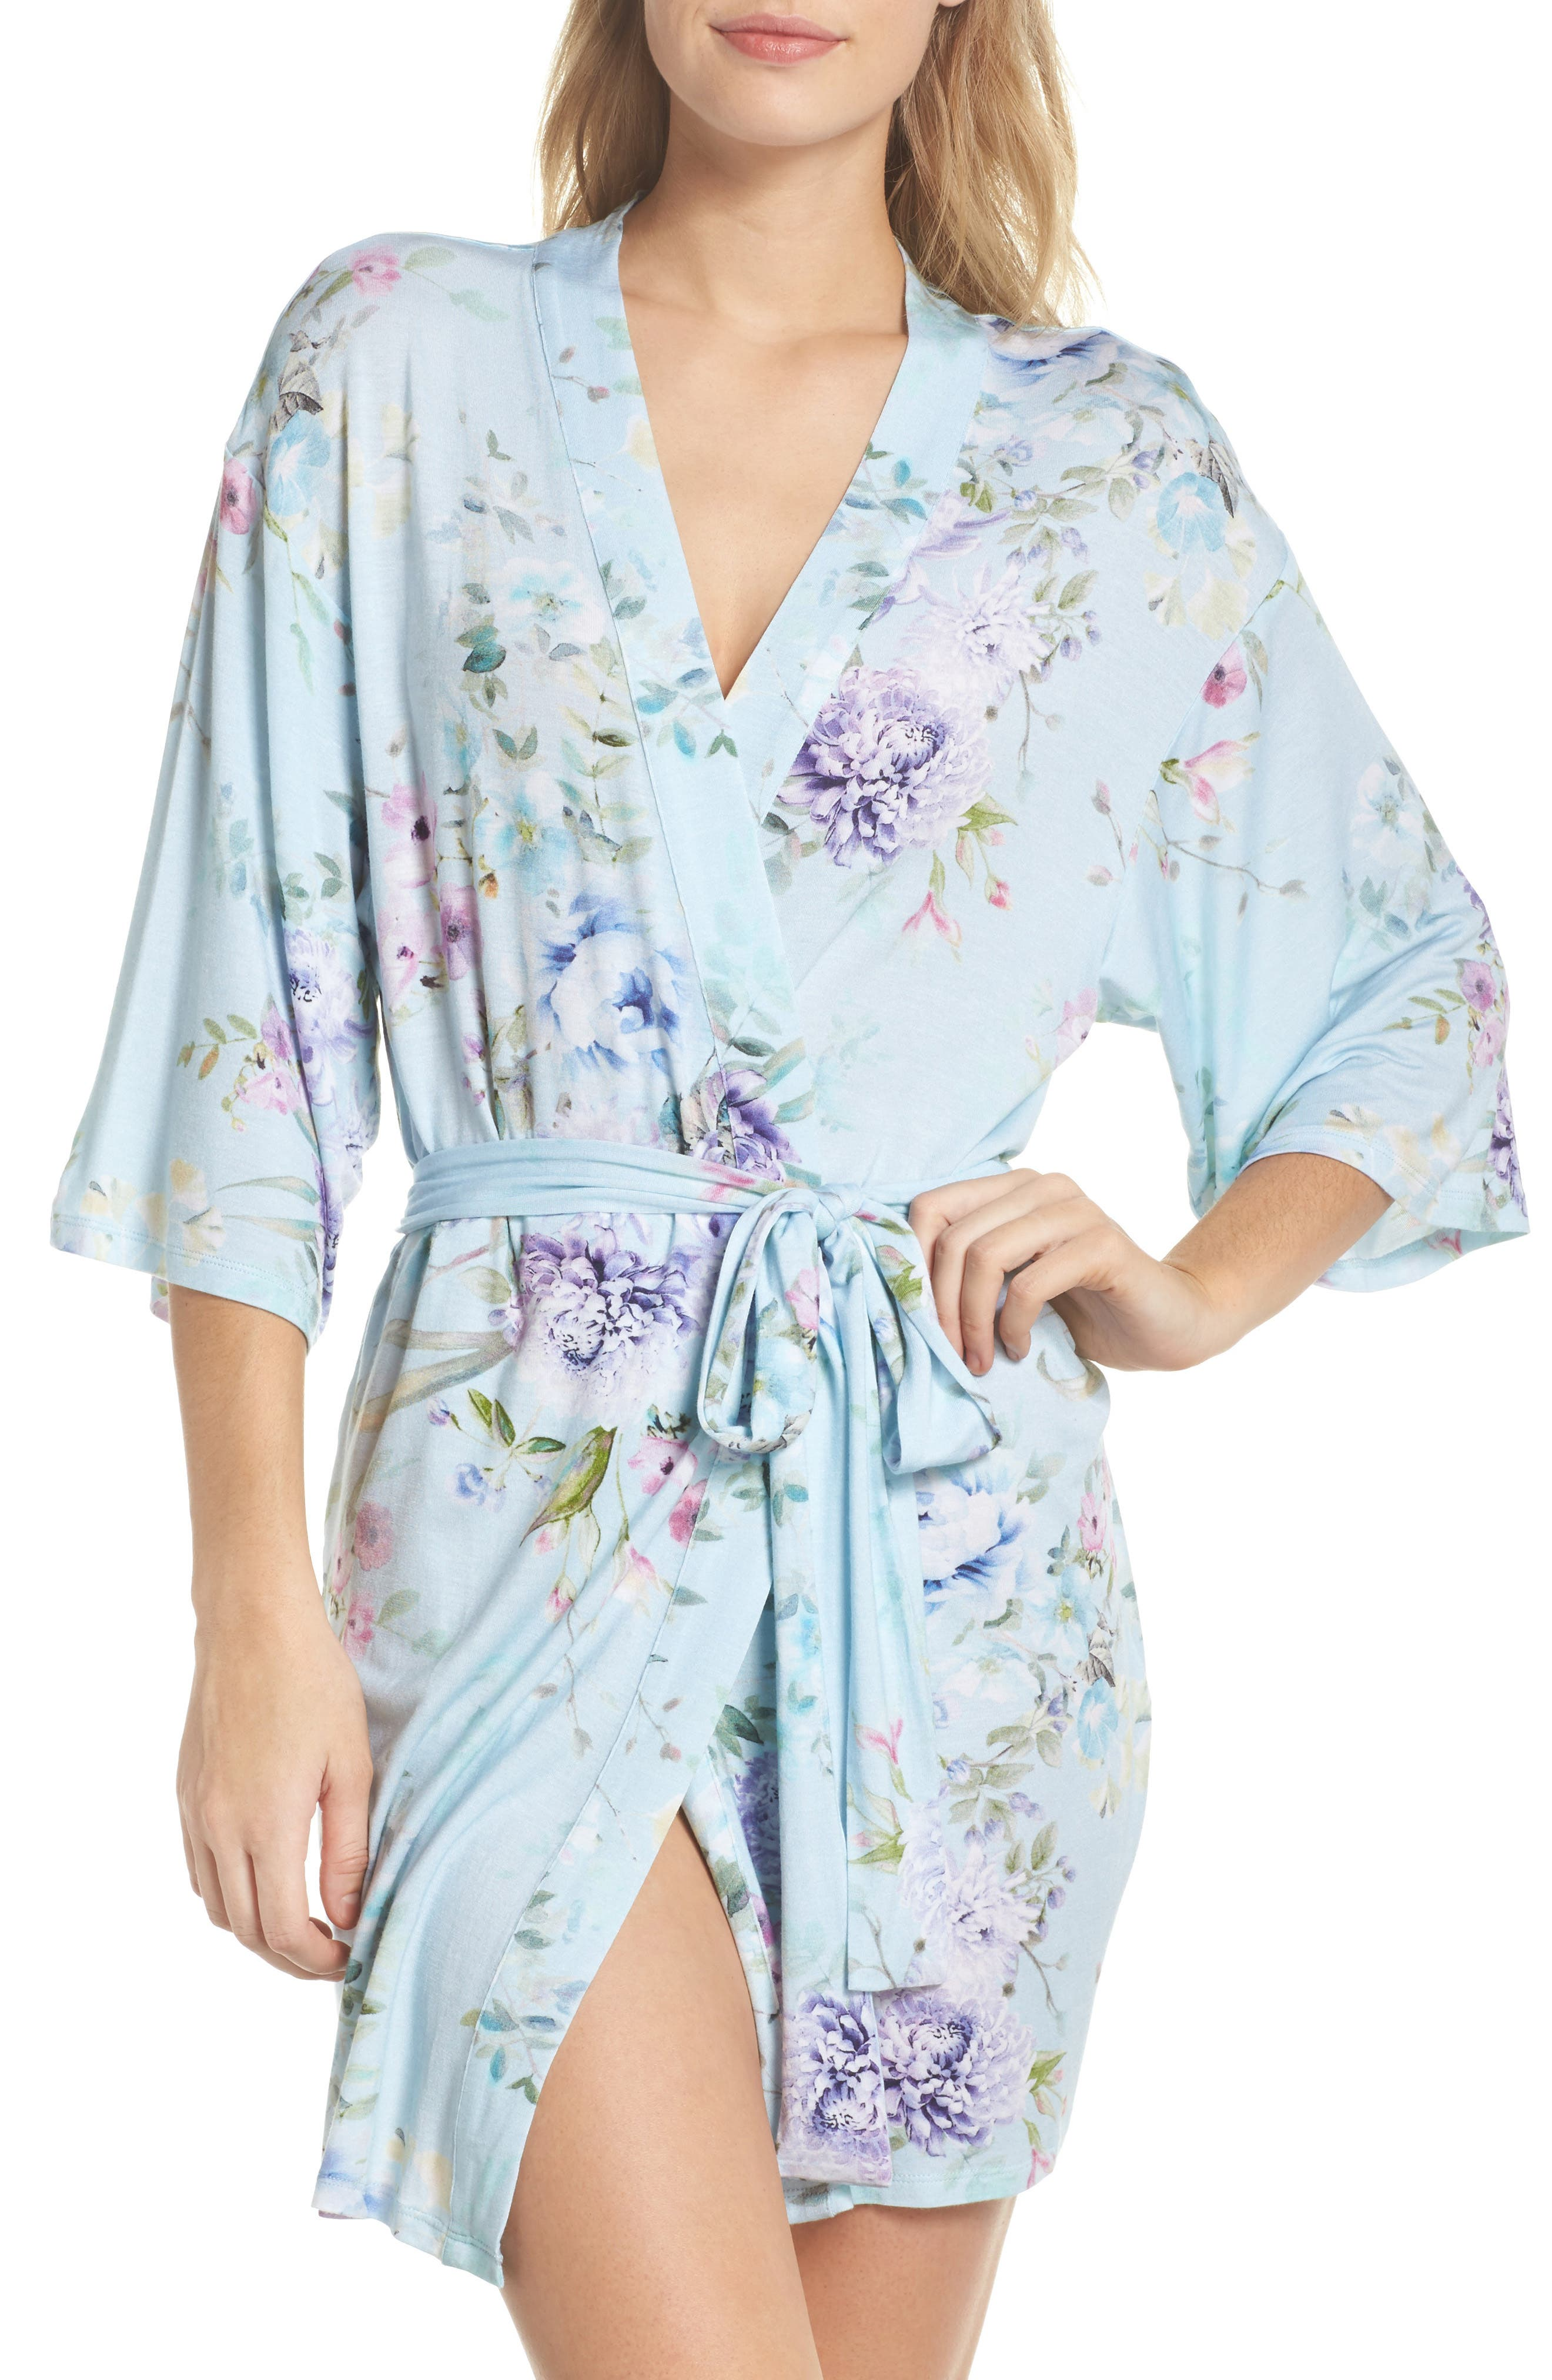 Lilith Short Robe,                             Main thumbnail 1, color,                             Blue